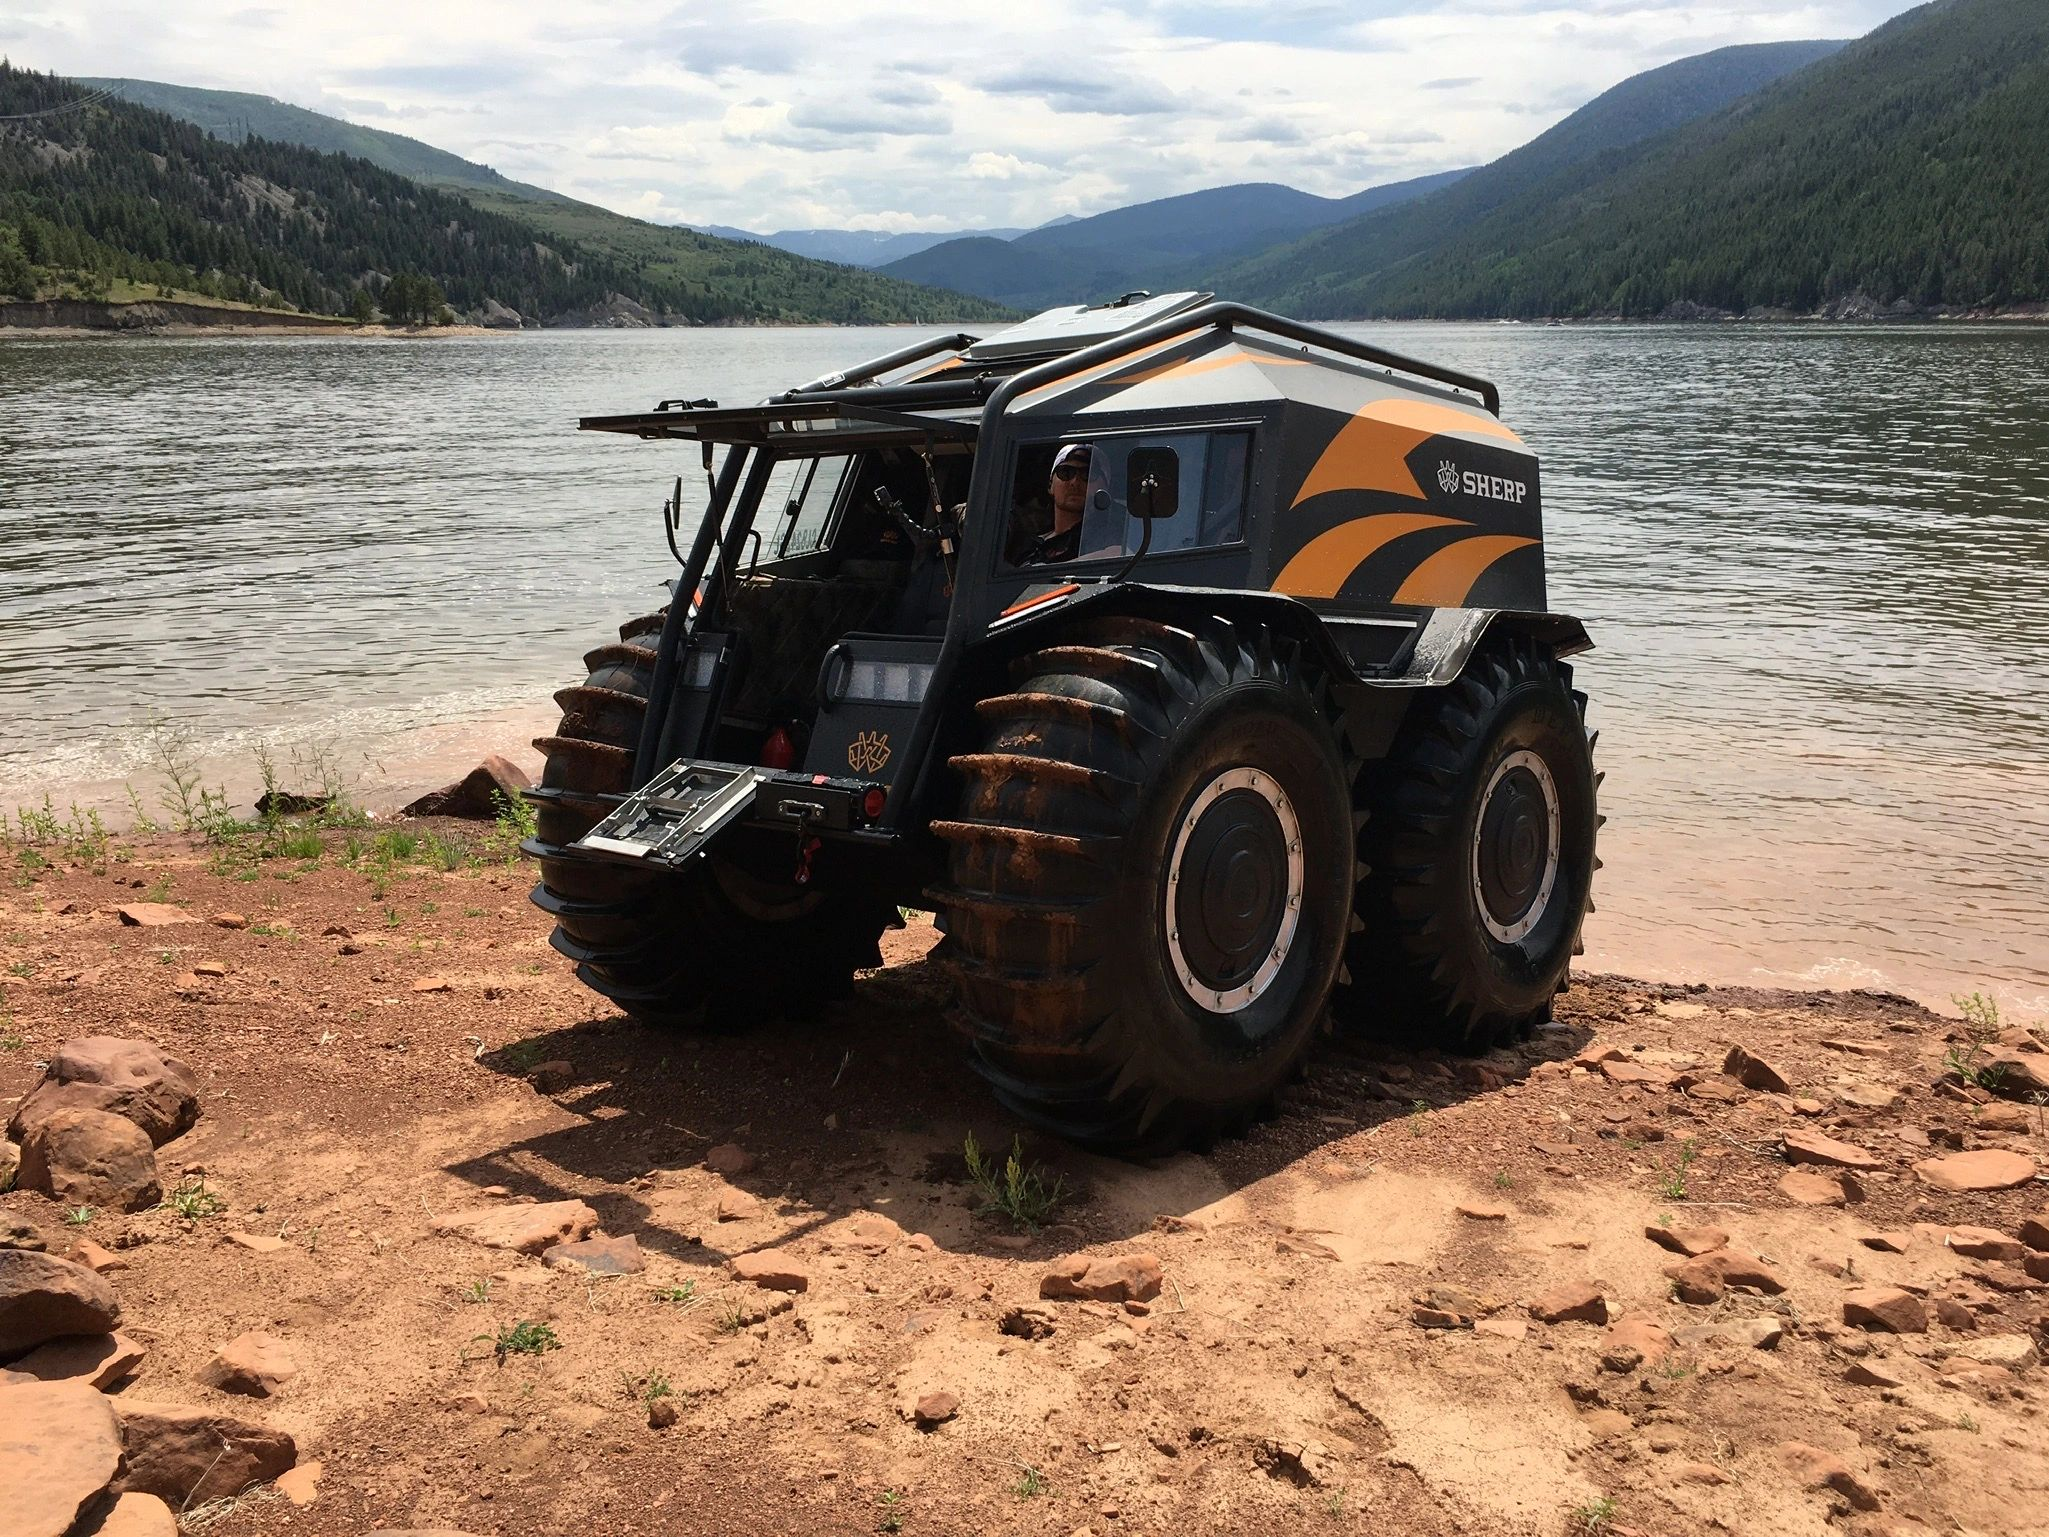 Sherp Pro on shore of lake